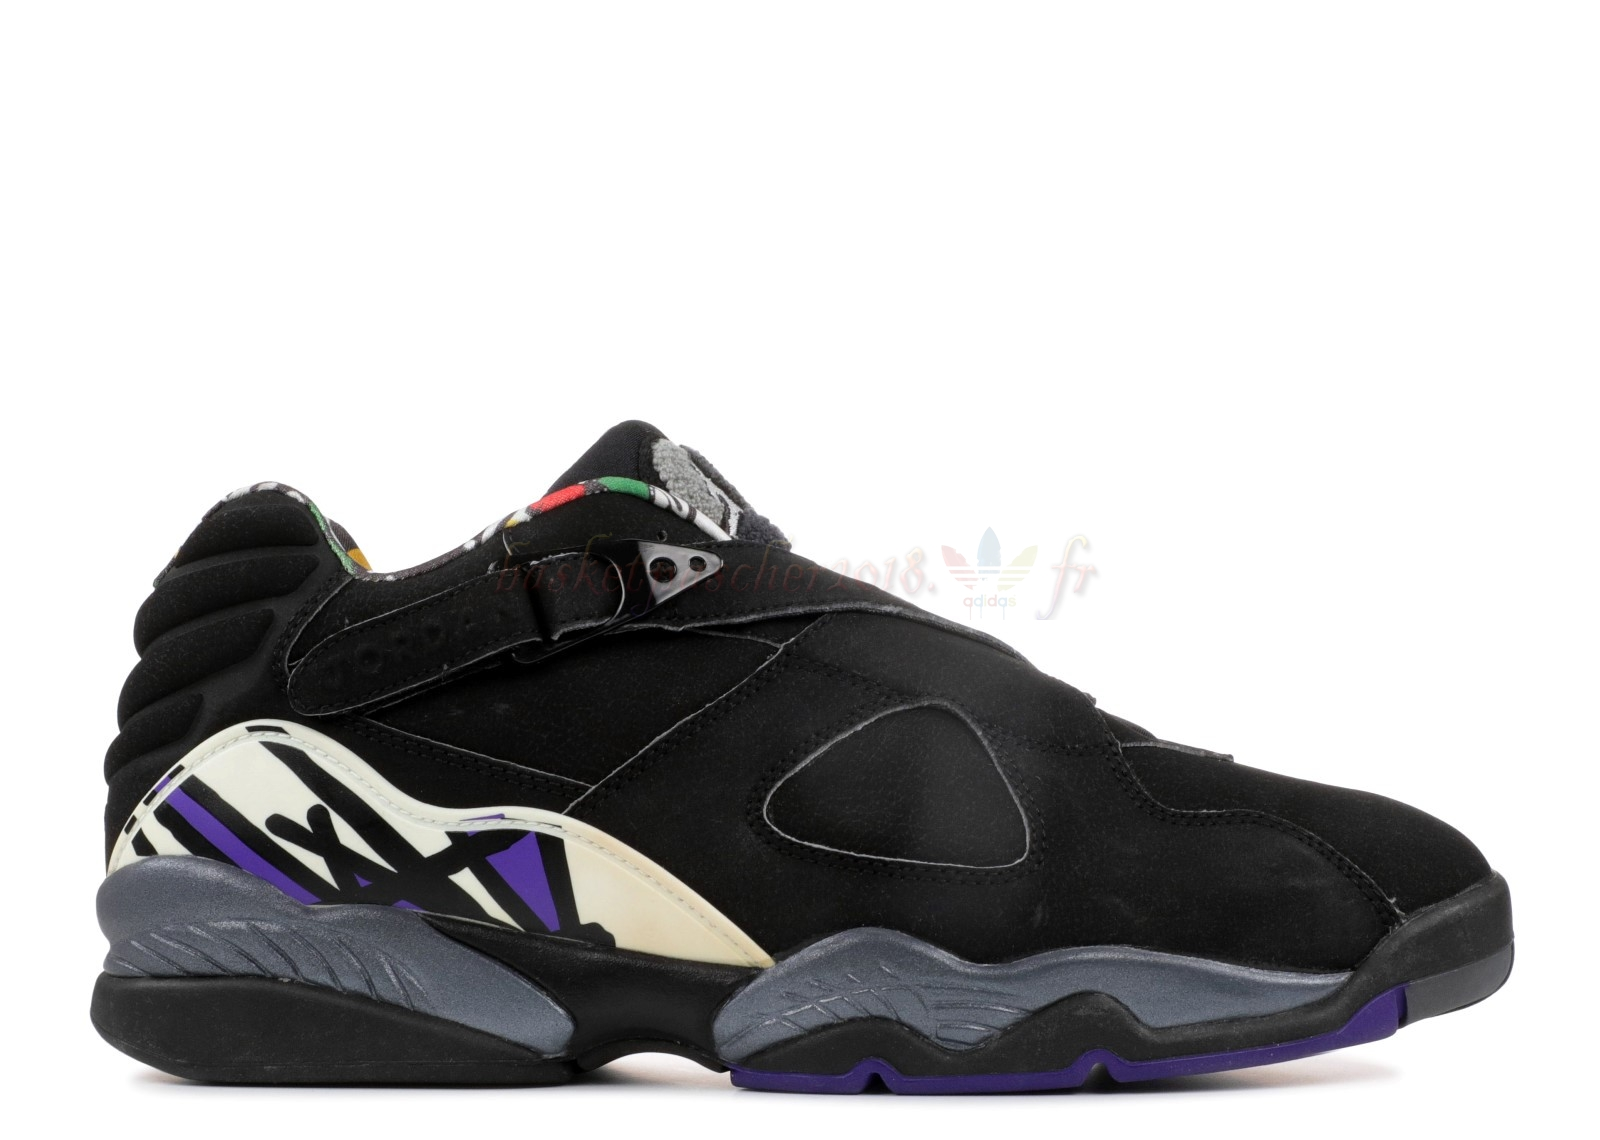 "Vente Chaude Chaussures De Basketball Homme Air Jordan 8 Low Pe ""Mike Bibby Kings Away"" Noir Pourpre (jbm155-m7) Pas Cher"